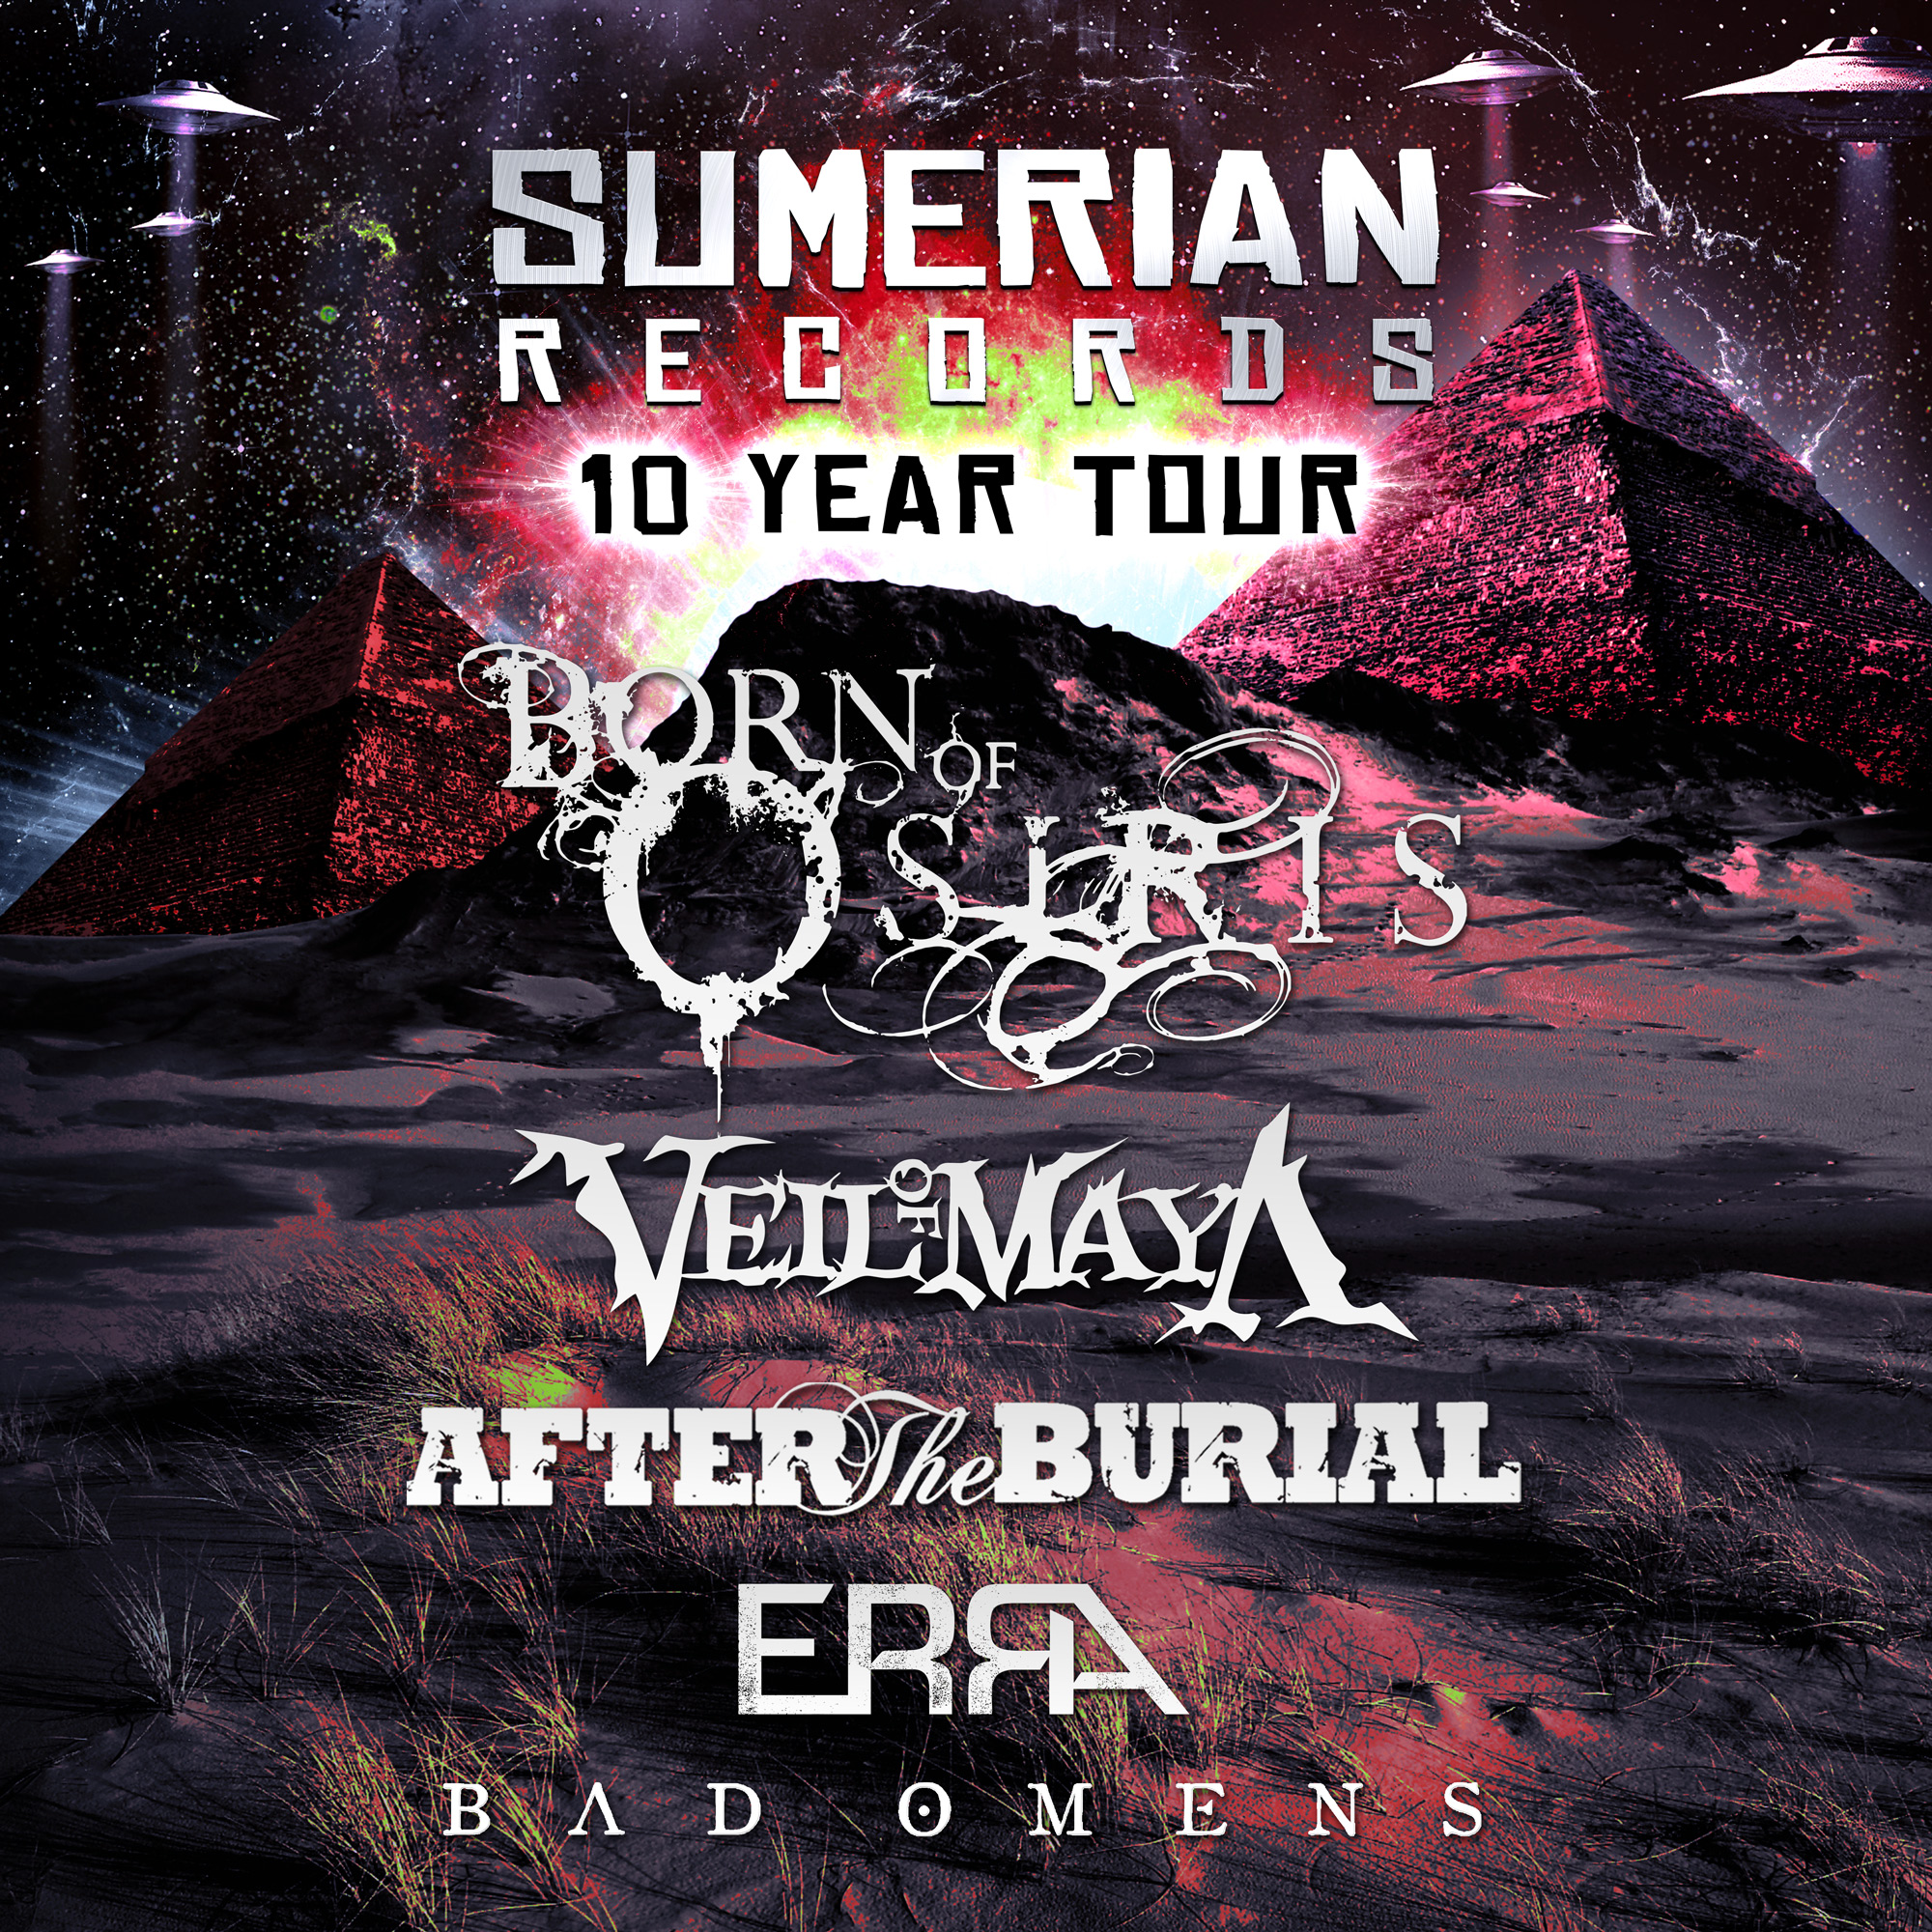 Sumerian Records 10 Year Tour with BORN OF OSIRIS * VEIL OF MAYA * AFTER THE BURIAL * ERRA * BAD OMENS